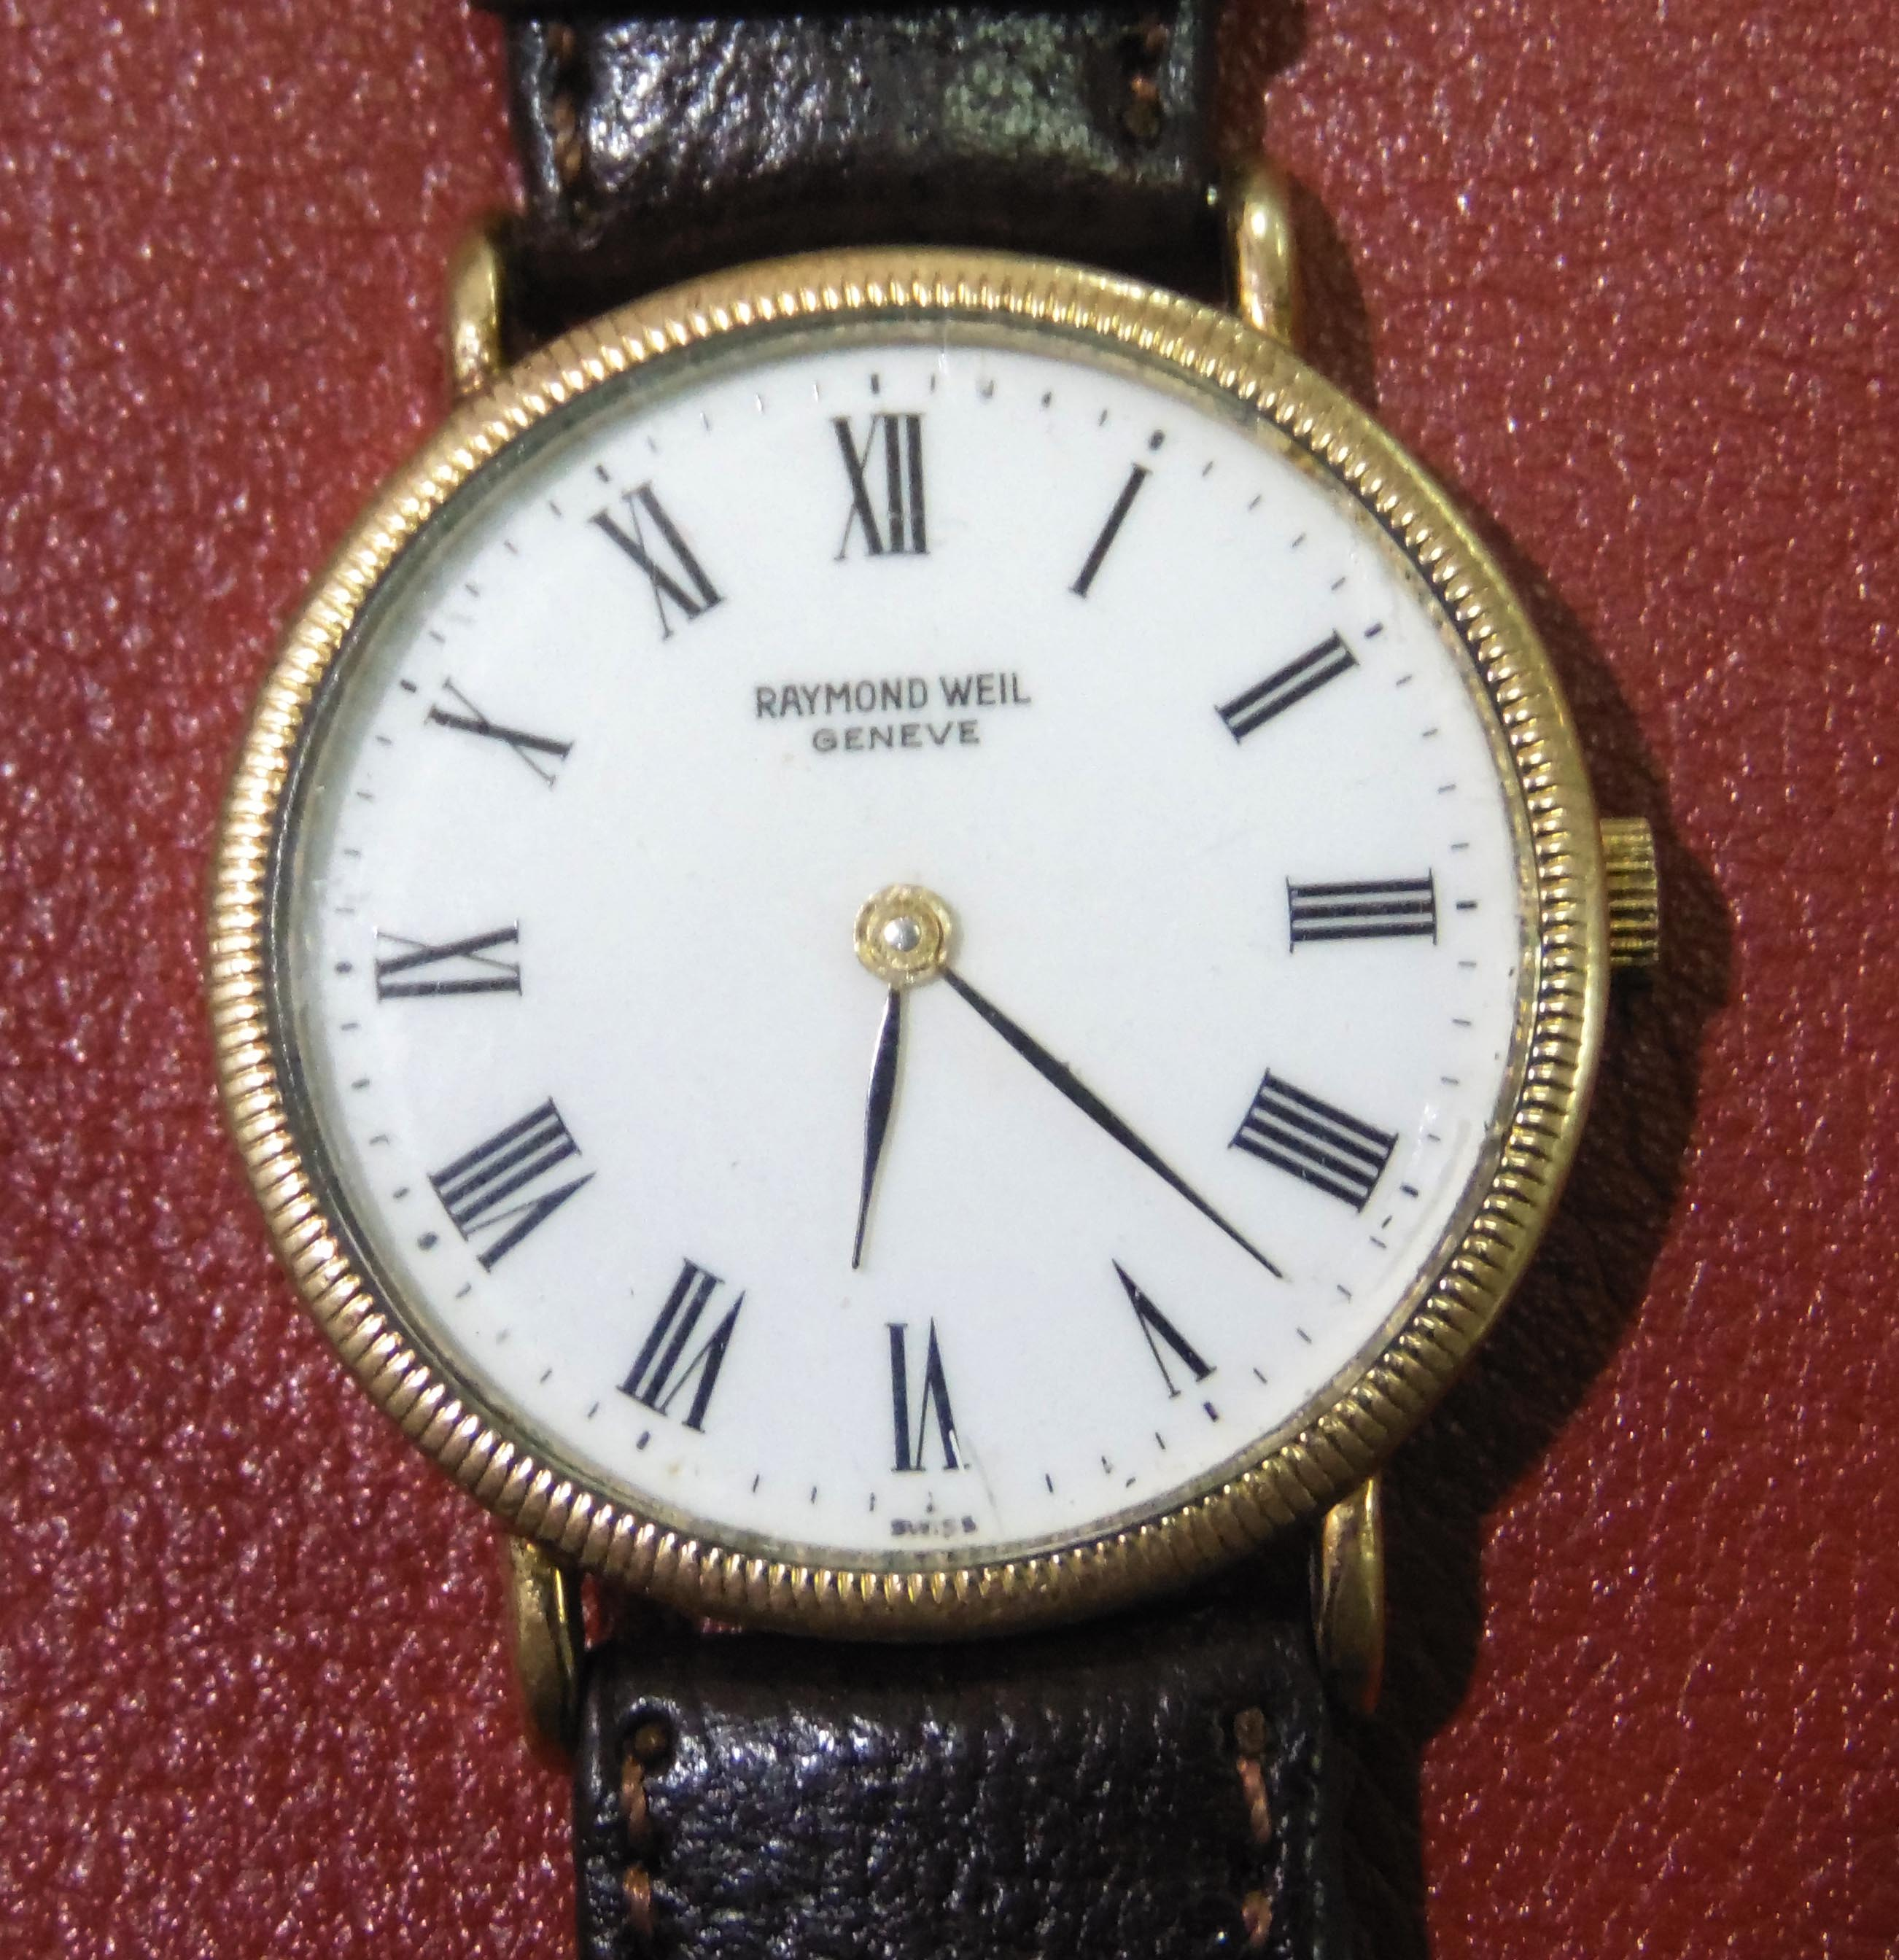 blog en hd raymond rw watches parsifal weil